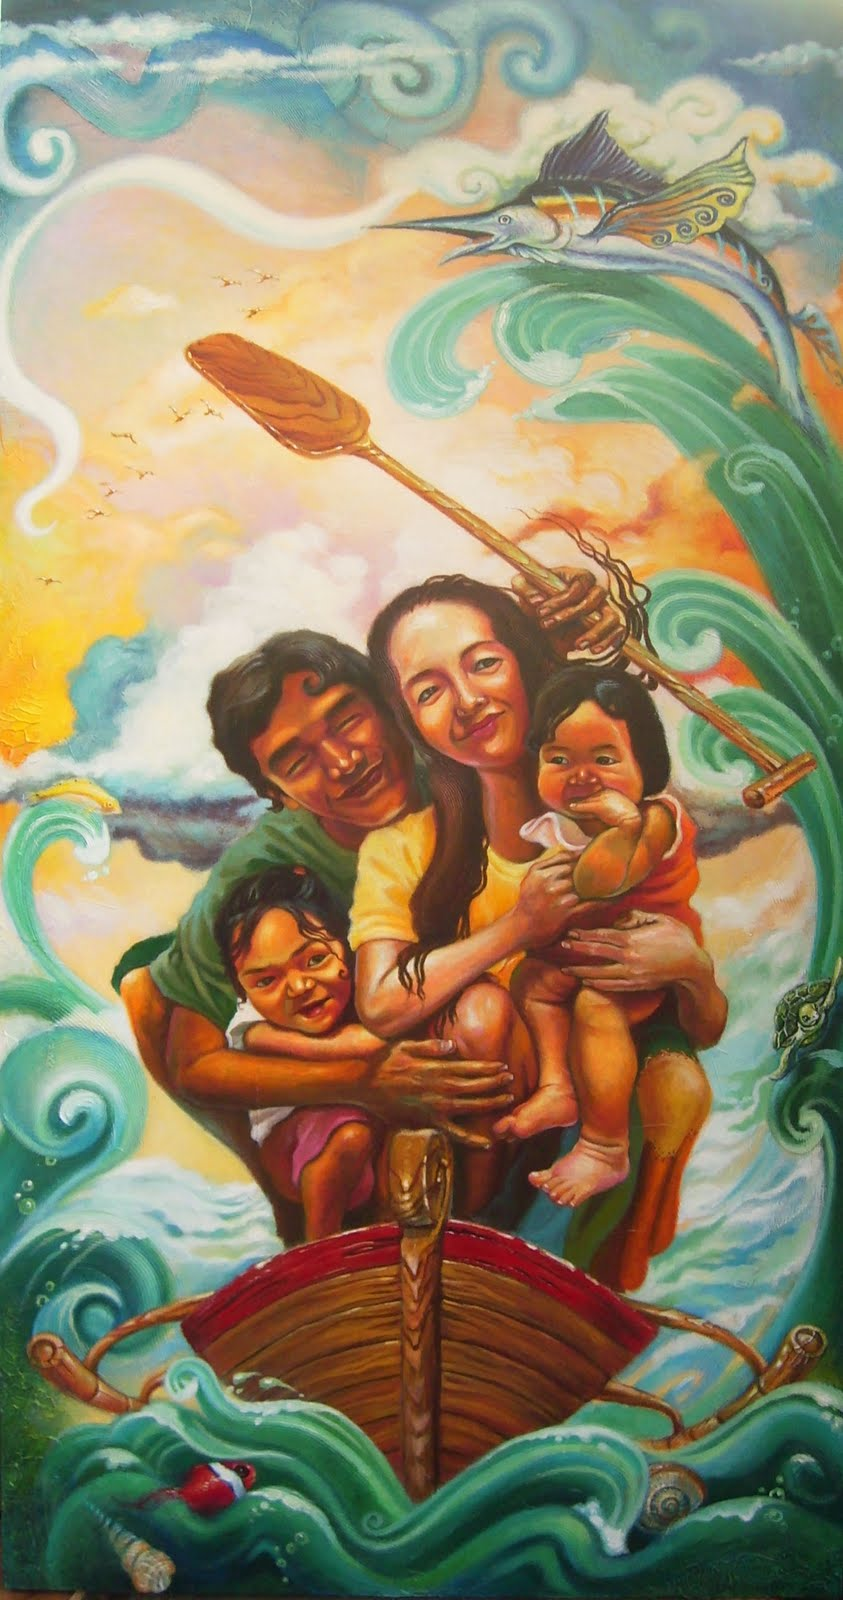 pamilyang pilipino The pantawid pamilyang pilipino program is the aquino administration s flagship poverty alleviation program and covers more than 4 400 000 filipino households in 2015 soliman: dswd is keeping 4ps.